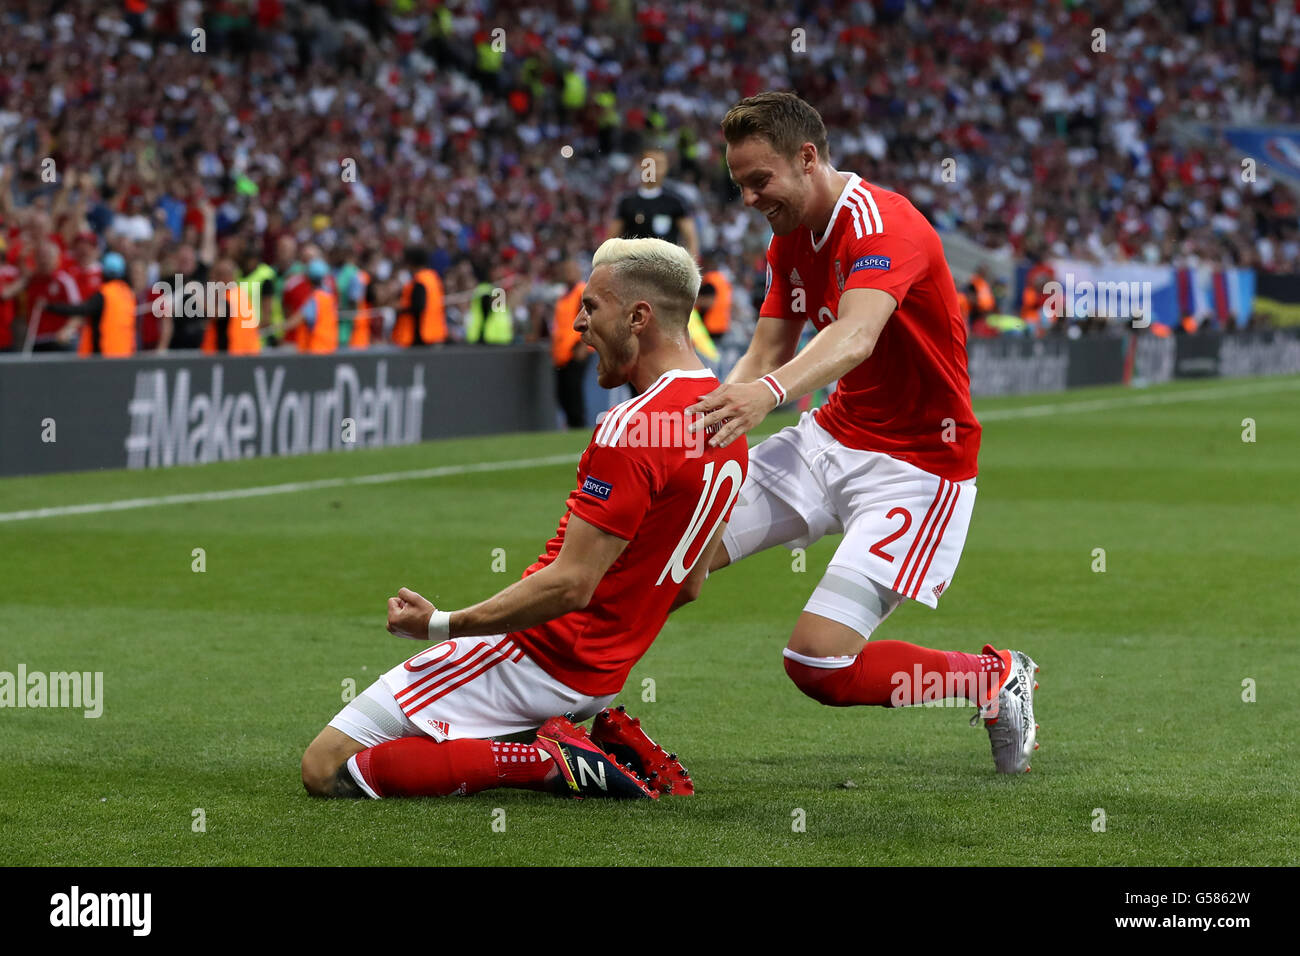 4e02ec5821a Wales  (l-r) Aaron Ramsey and Chris Gunter during the UEFA Euro 2016